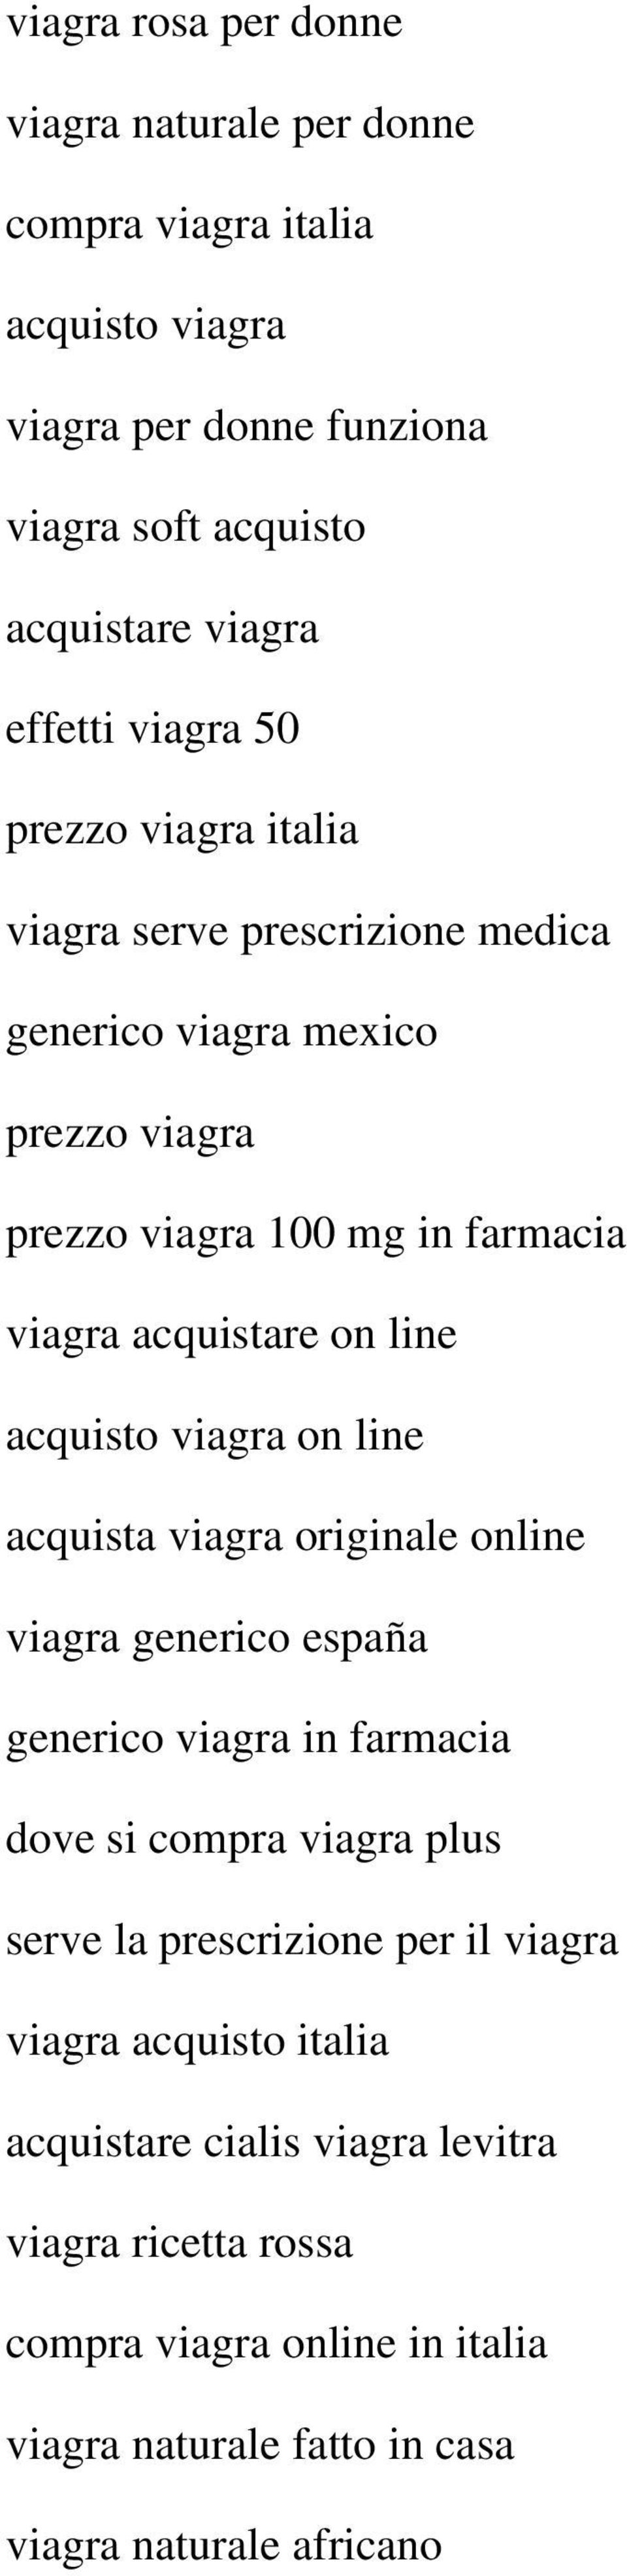 acquisto viagra on line acquista viagra originale online viagra generico españa generico viagra in farmacia dove si compra viagra plus serve la prescrizione per